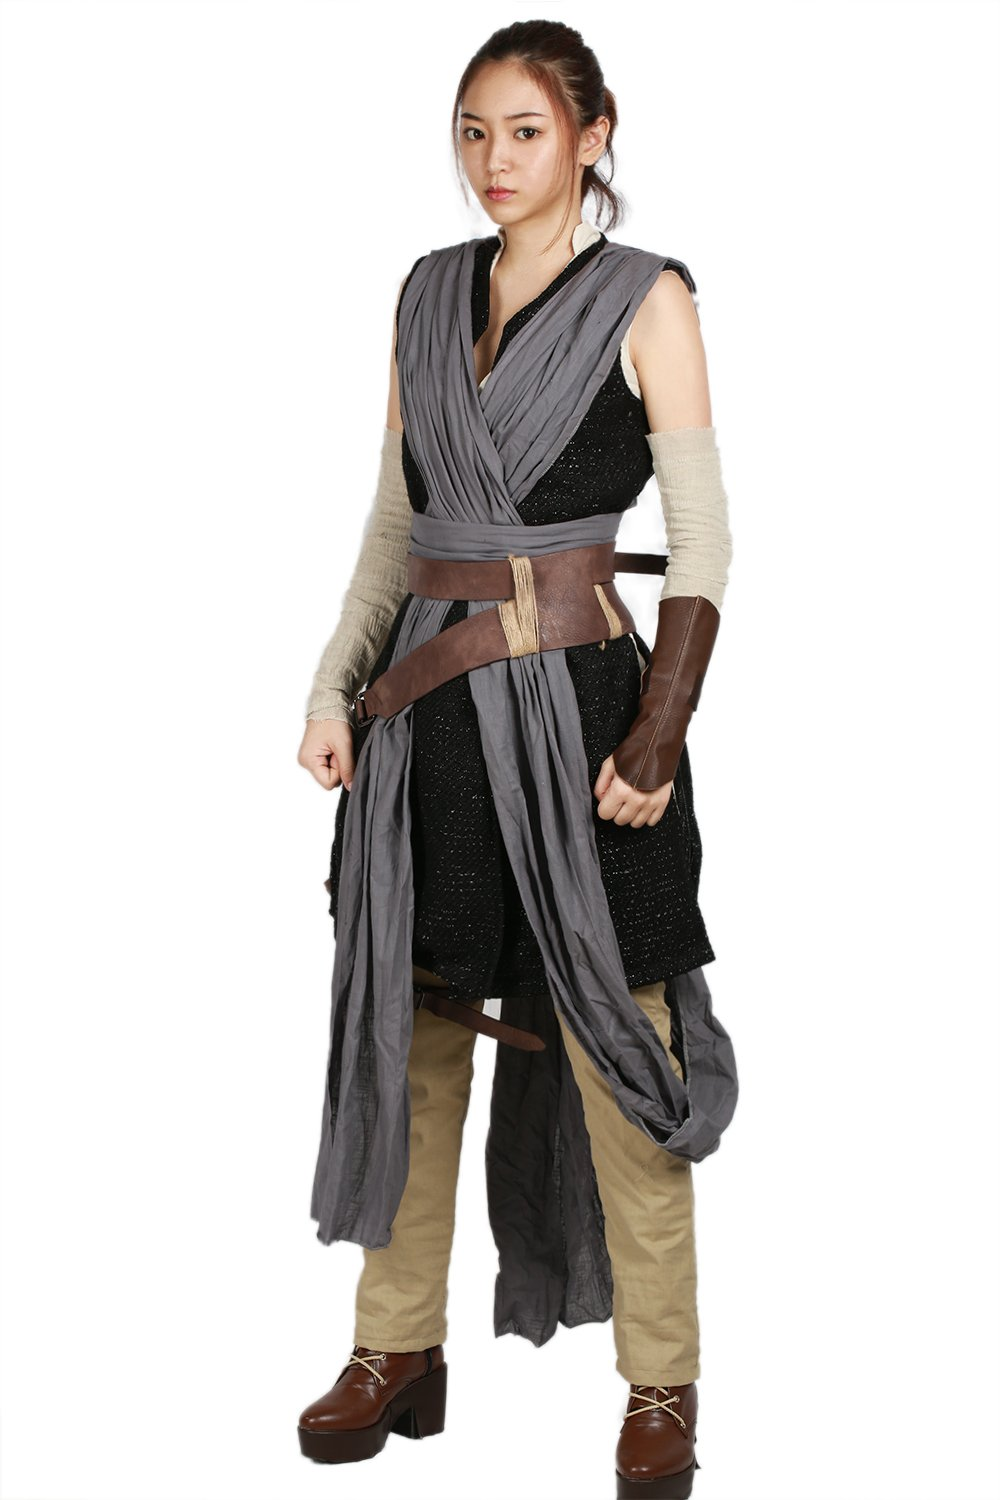 xcoser Rey Costume Deluxe Cool Full Set Tops Belt Tunic Movie Cosplay Women Outfit L by xcoser (Image #3)